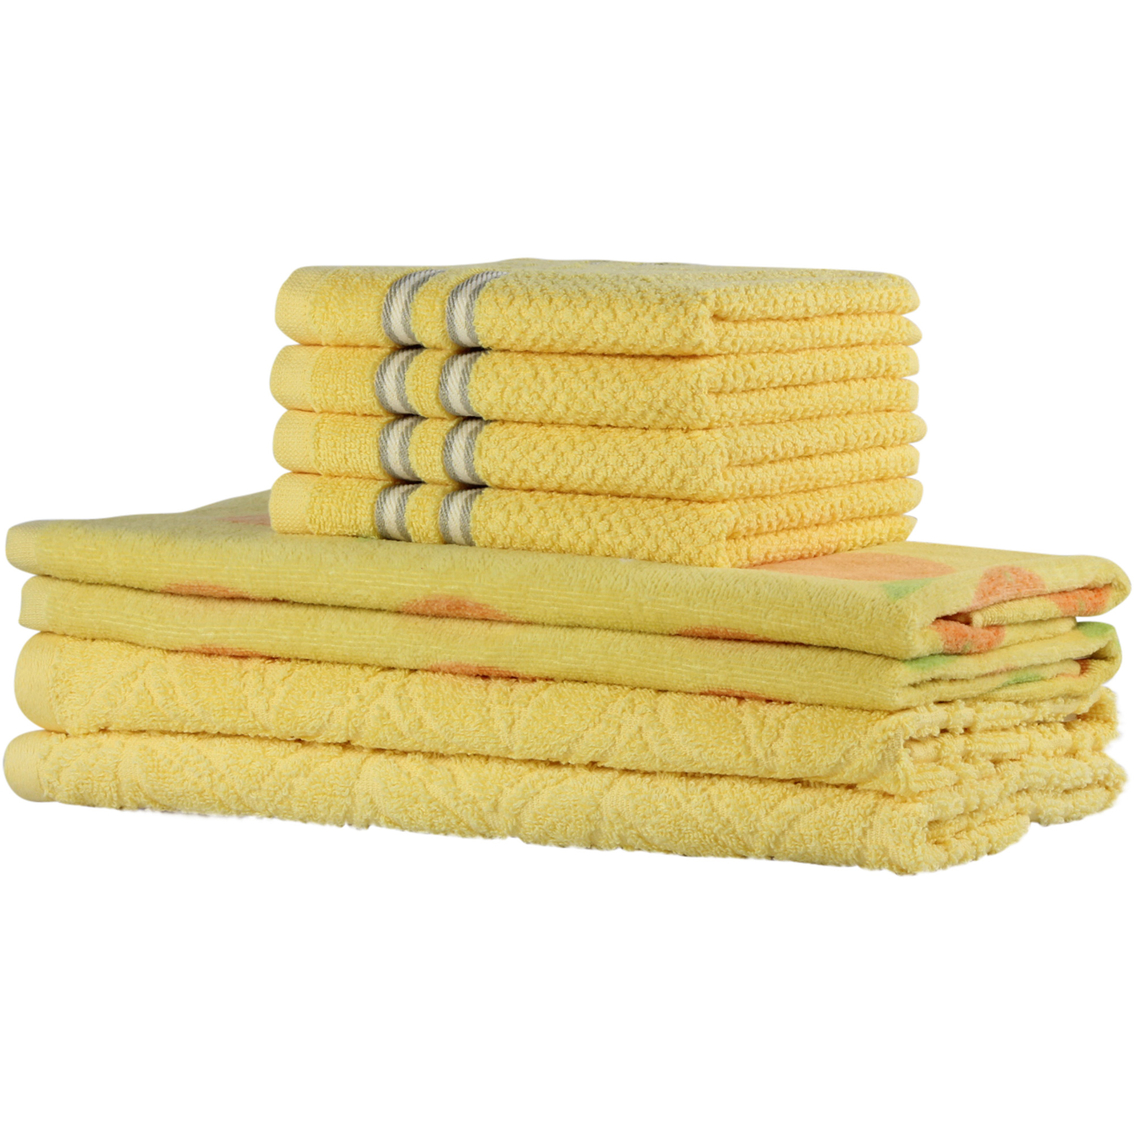 Freshee 8 Pc Orted Kitchen Towel